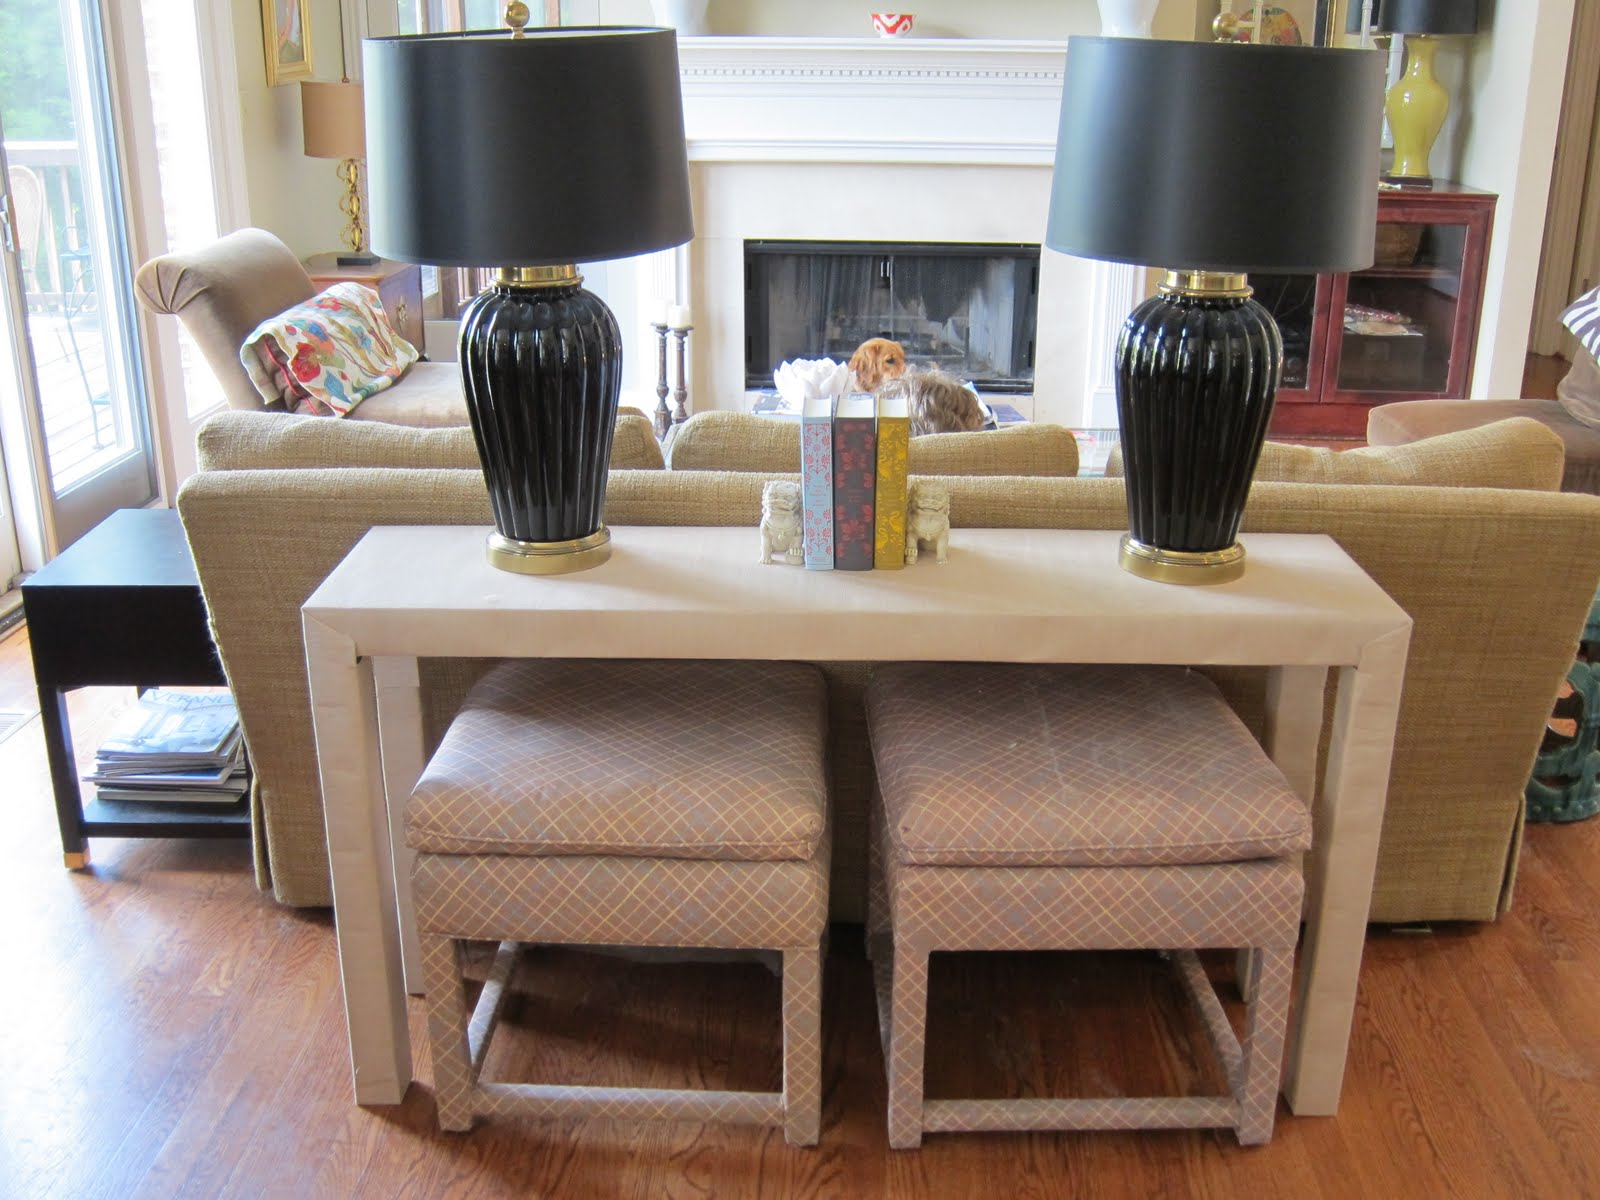 70 inch long sofa table signature design by ashley my interior life mission almost accomplished